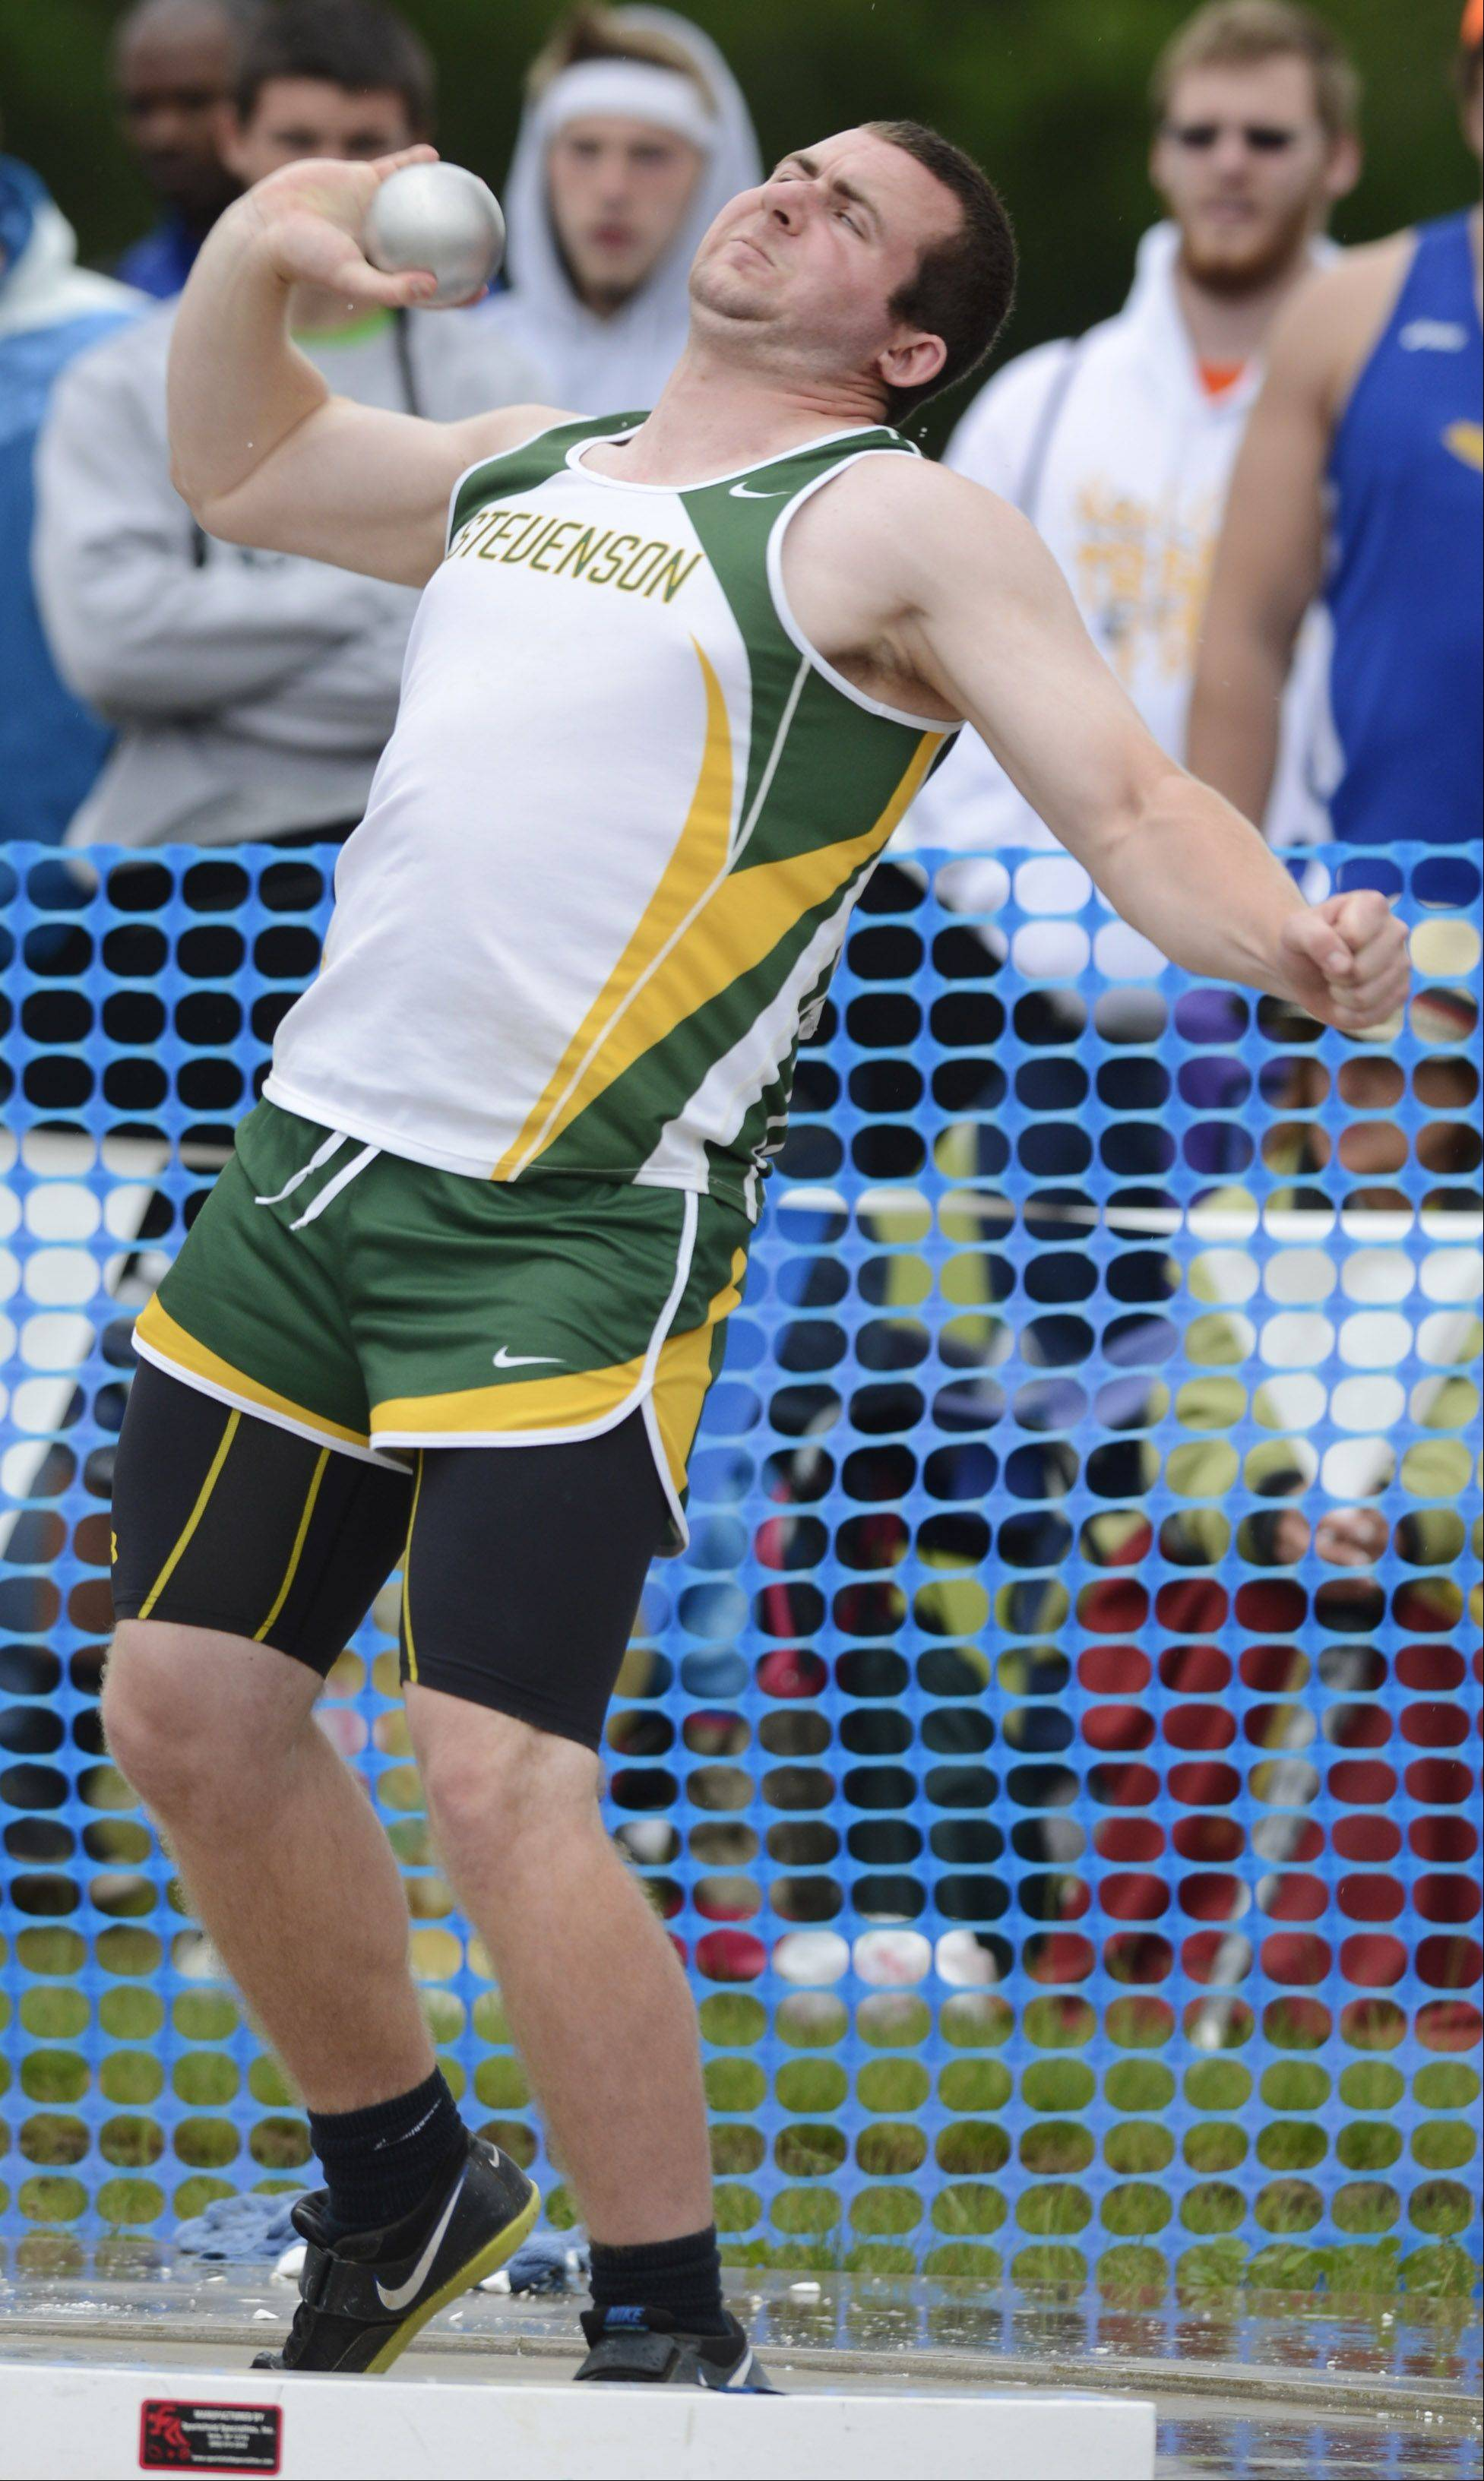 Stevenson's Jordan Fobbe throws in the Class 3A shot put during the boys state track finals in Charleston Saturday.